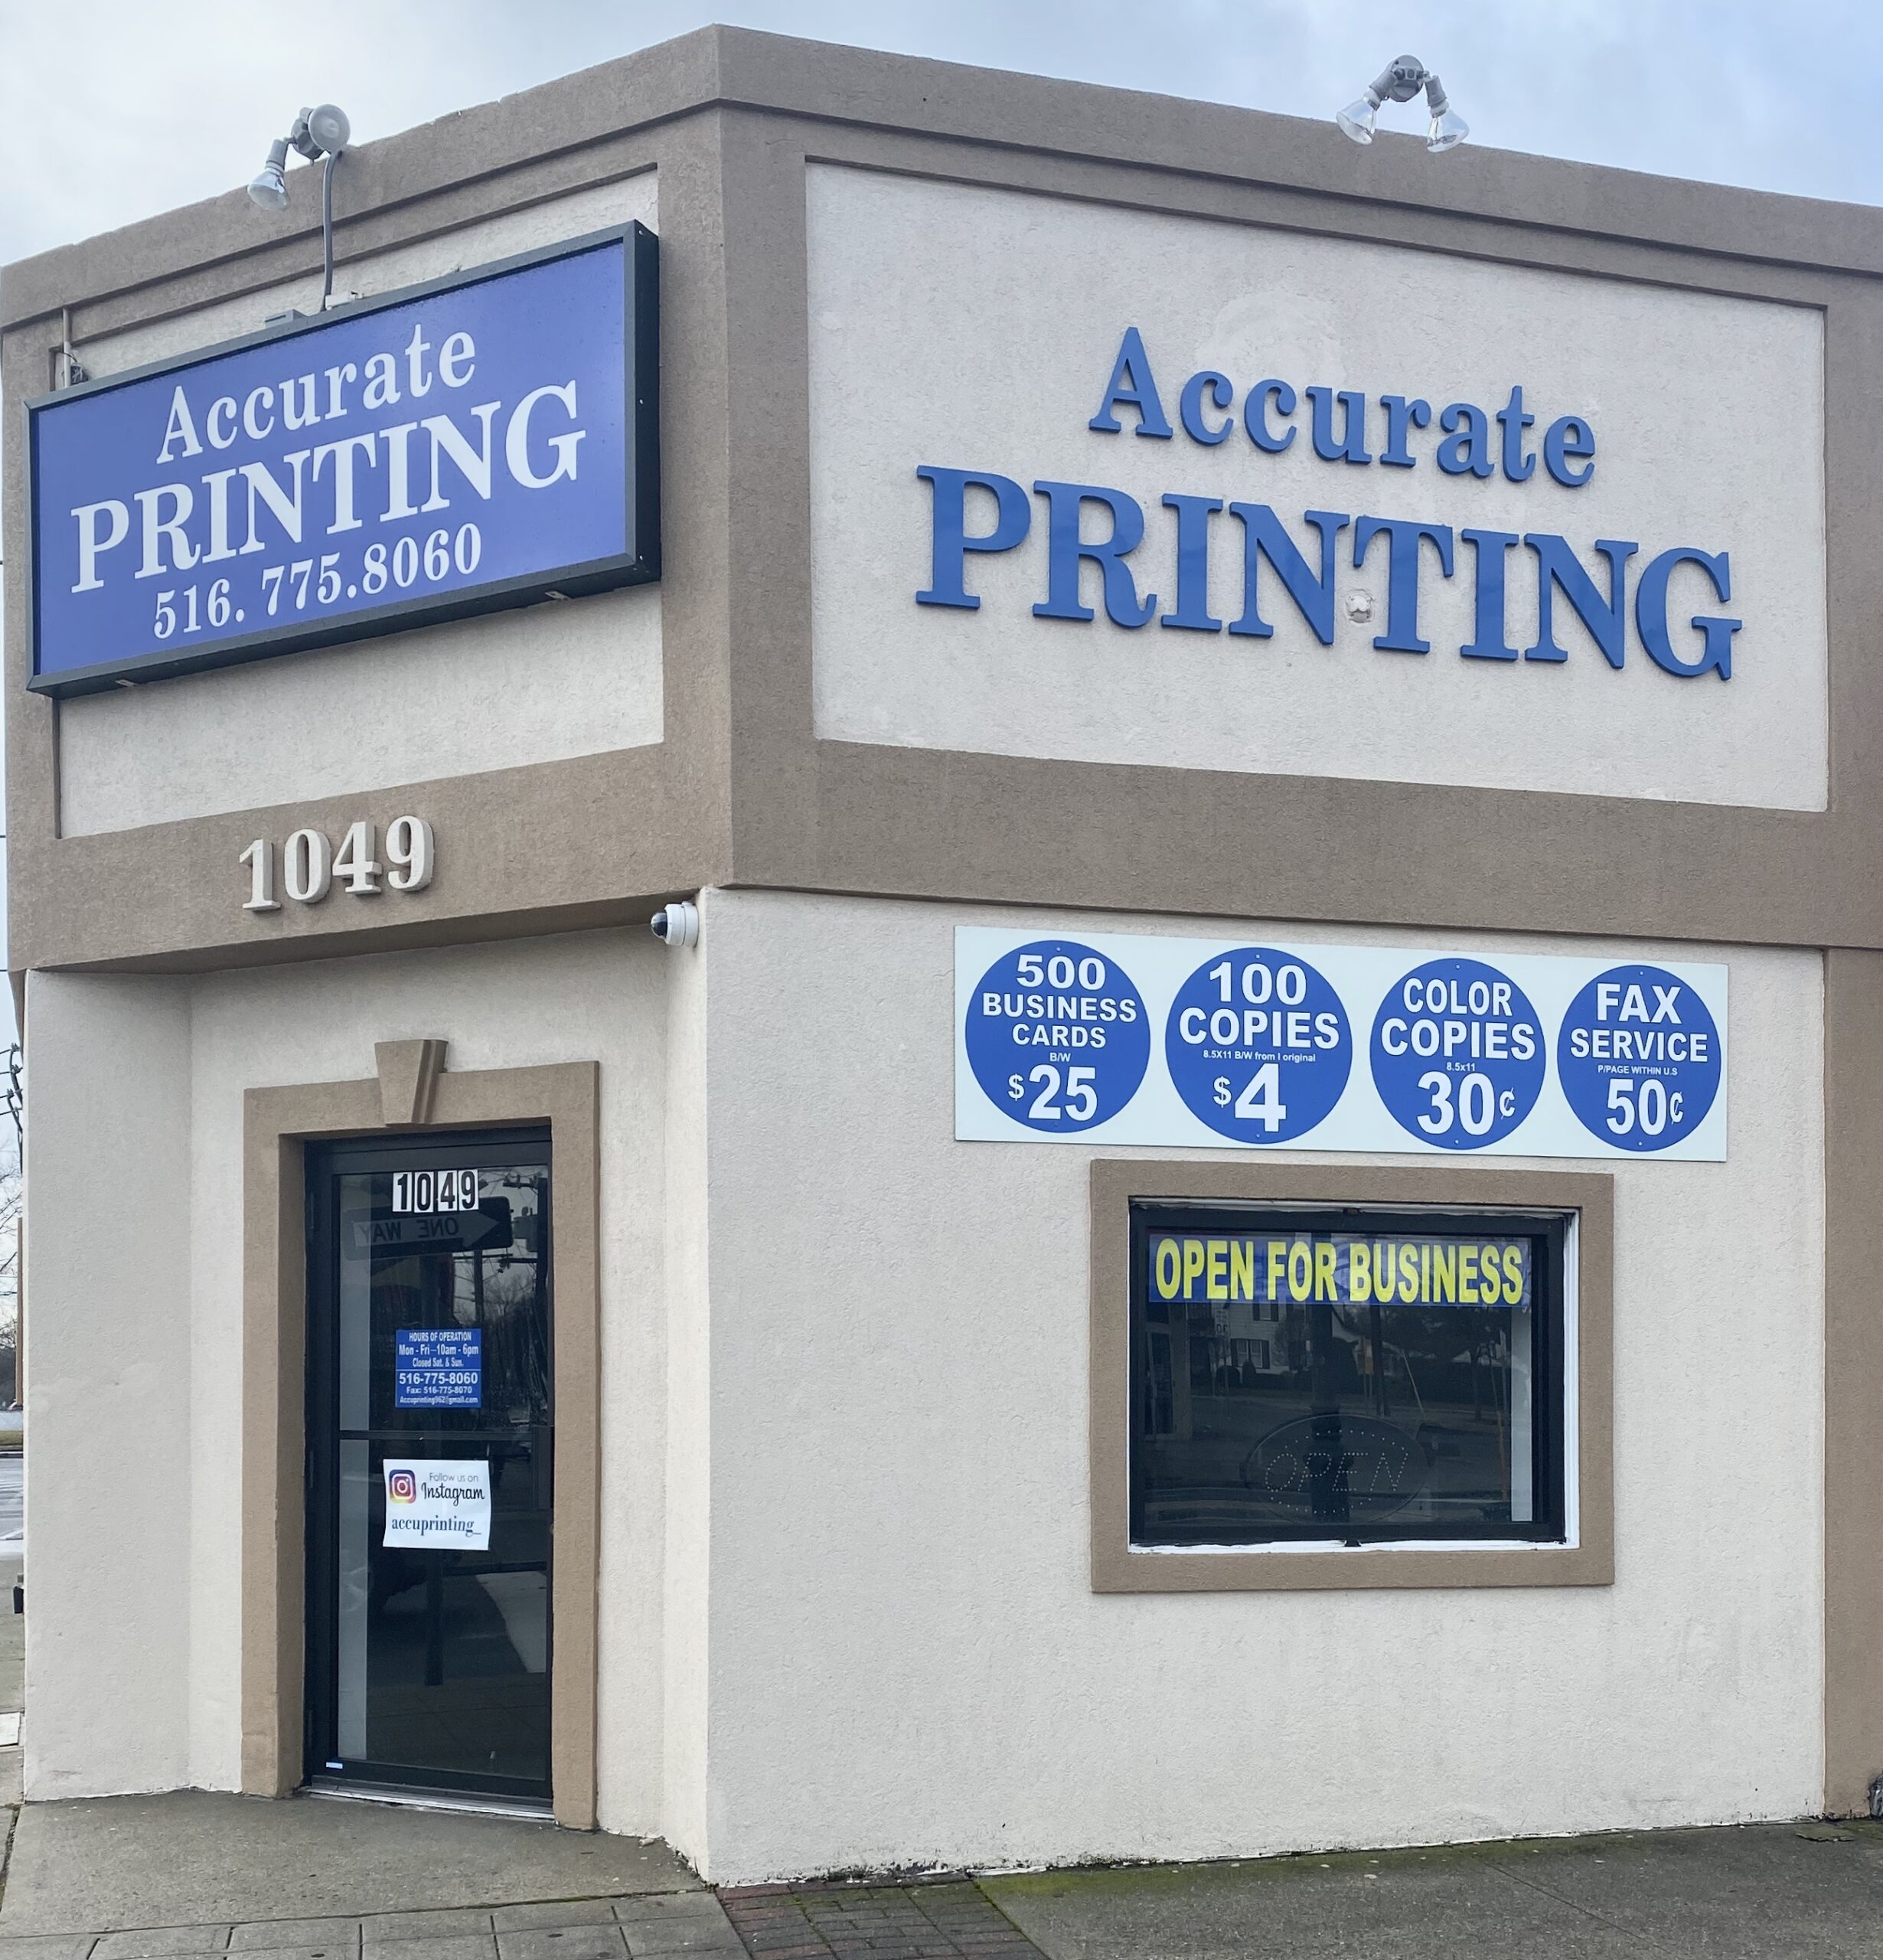 Accurate Printing